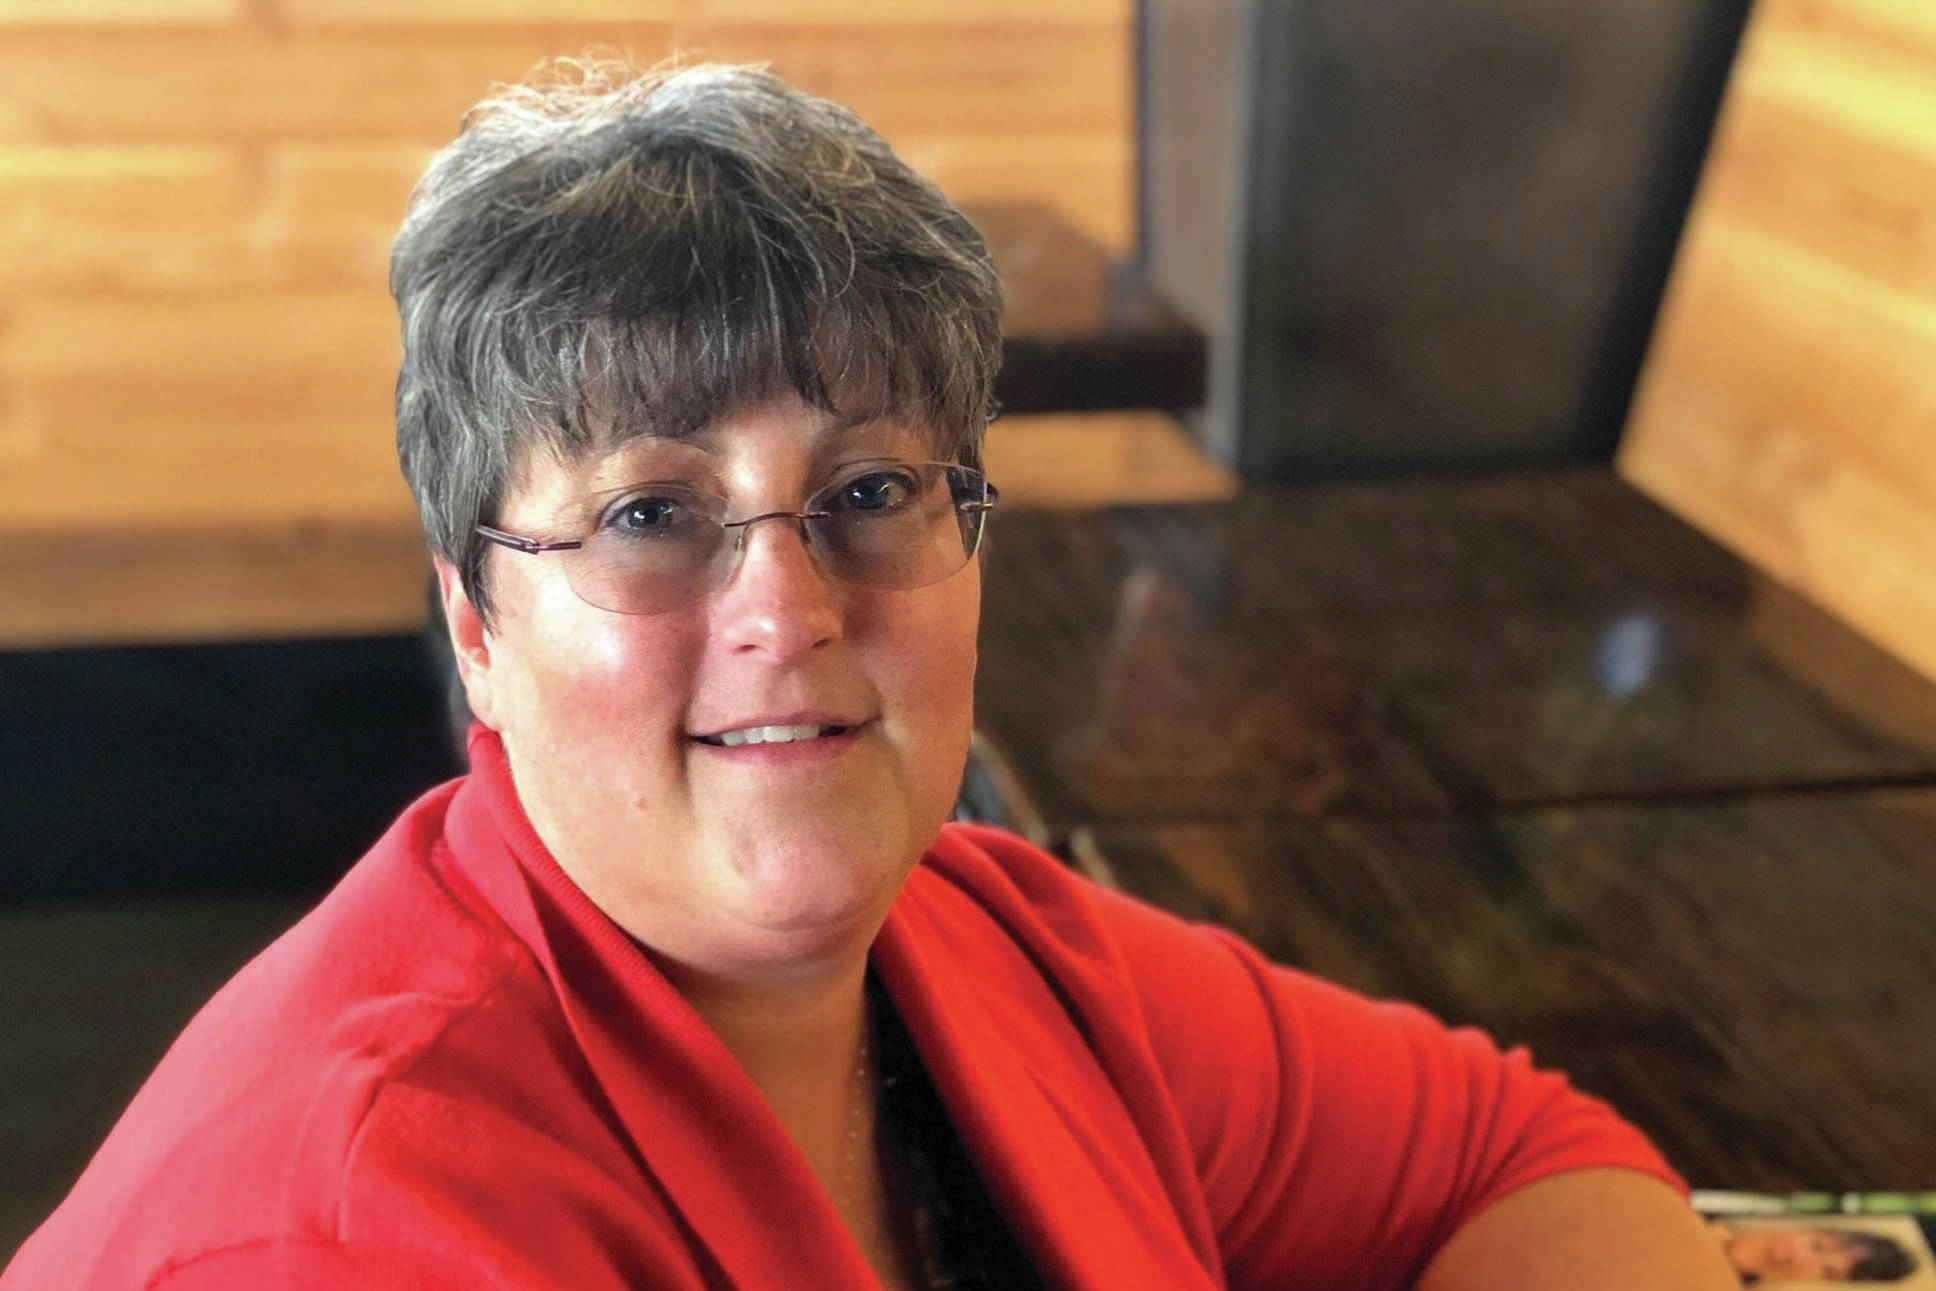 Soldotna resident Rose Henry is running for the Kenai Peninsula Borough Assembly's District 4 seat. (Photo by Victoria Petersen/Peninsula Clarion)